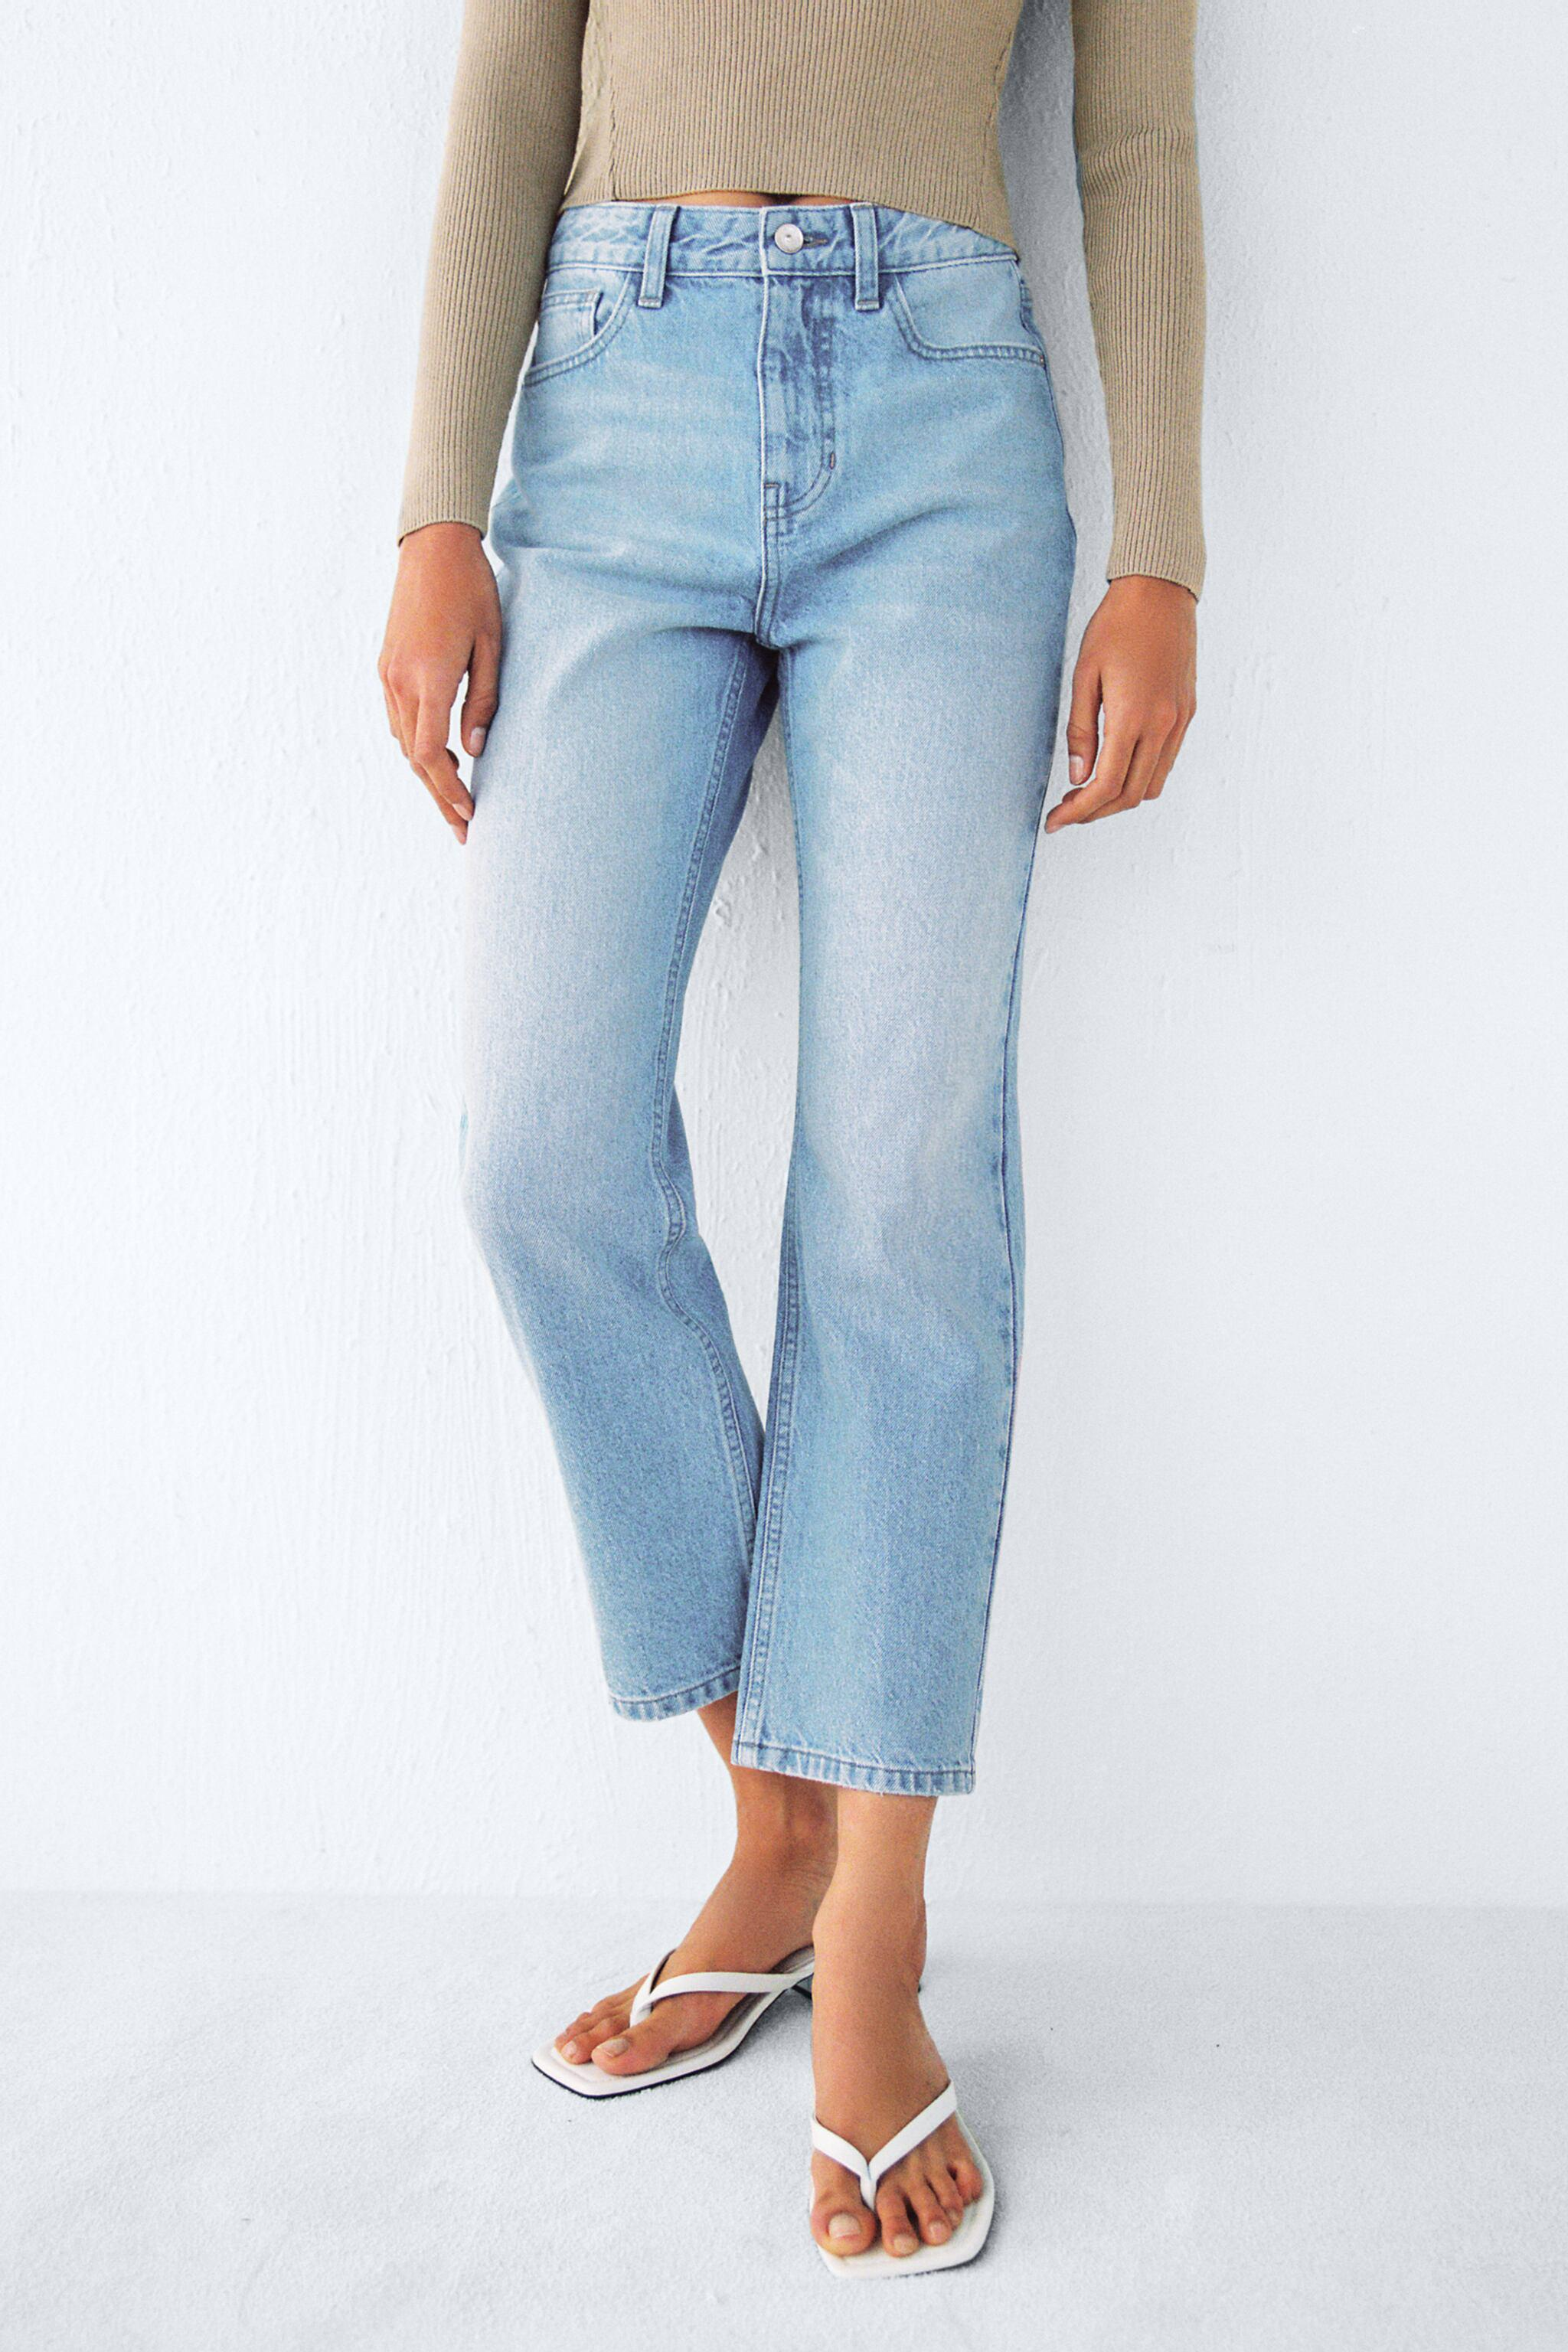 Z1975 HIGH RISE TAPERED JEANS 1